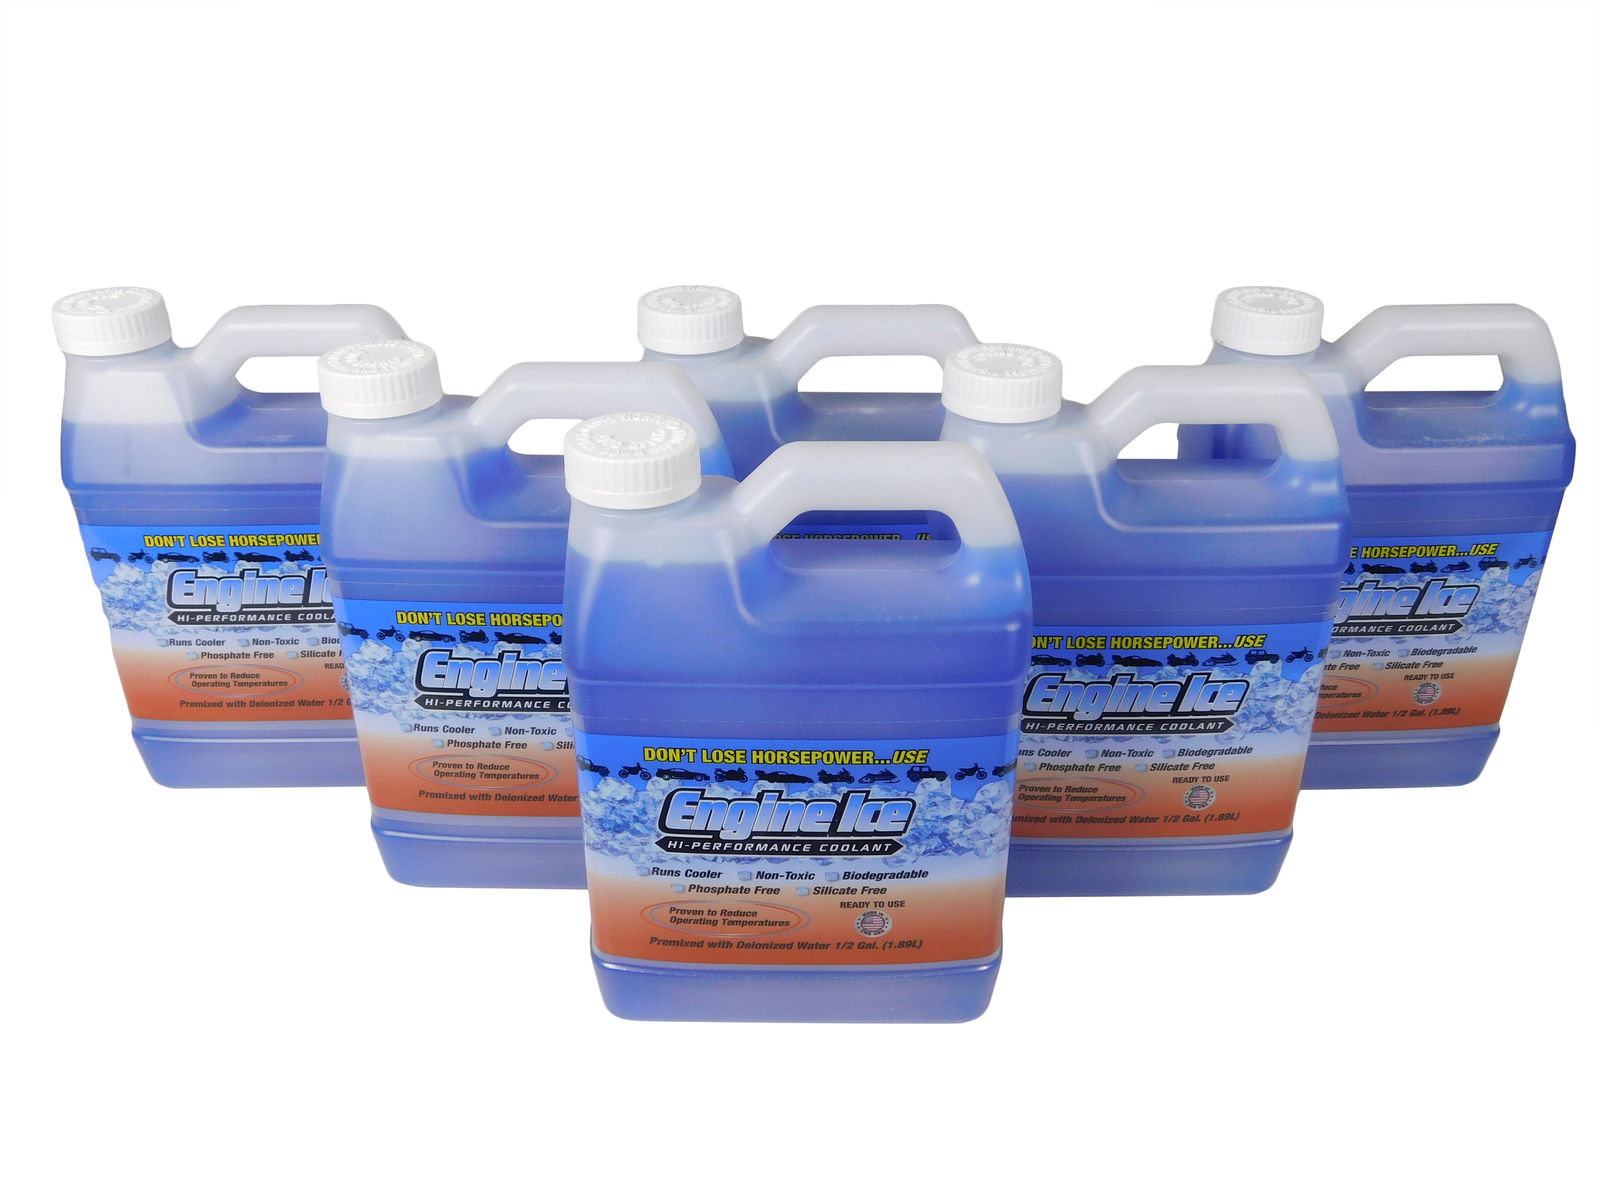 Engine-Ice-TYDS008-03-High-Performance-Coolant-0.5-gallon-6-Pack-image-1